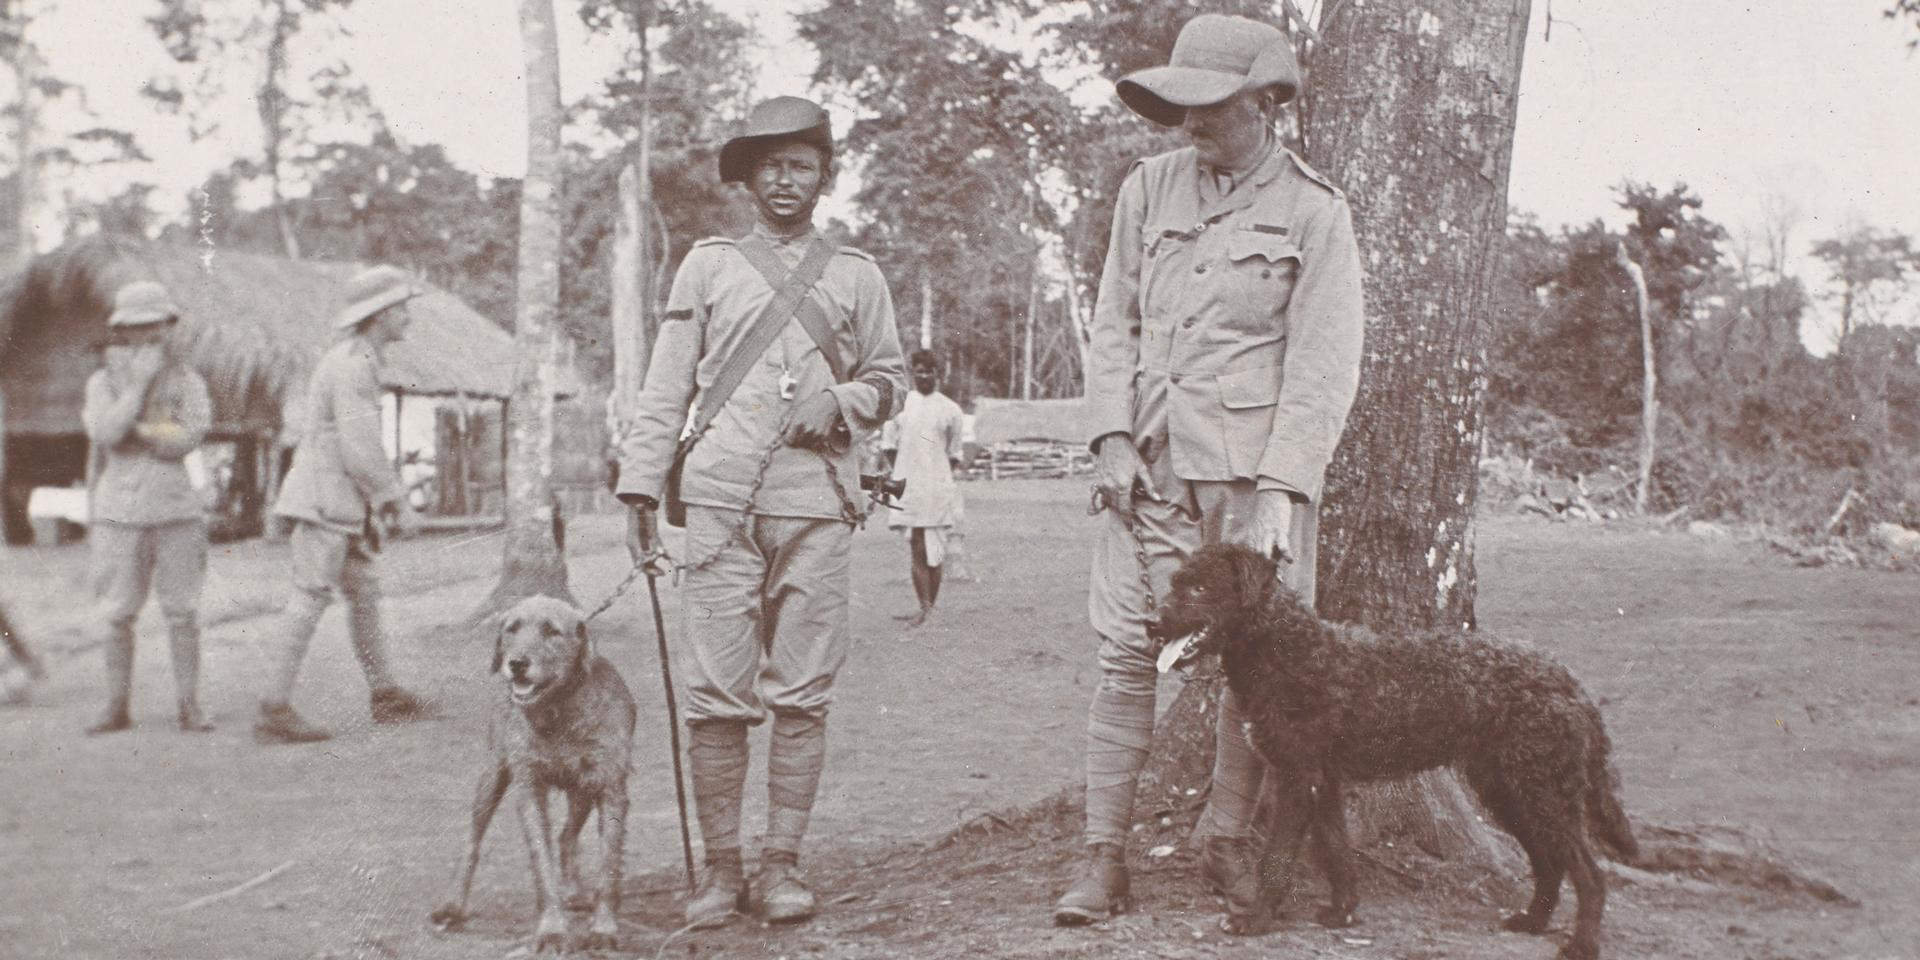 Bab and Jumbo with members of the 1st/8th Gurkha Rifles